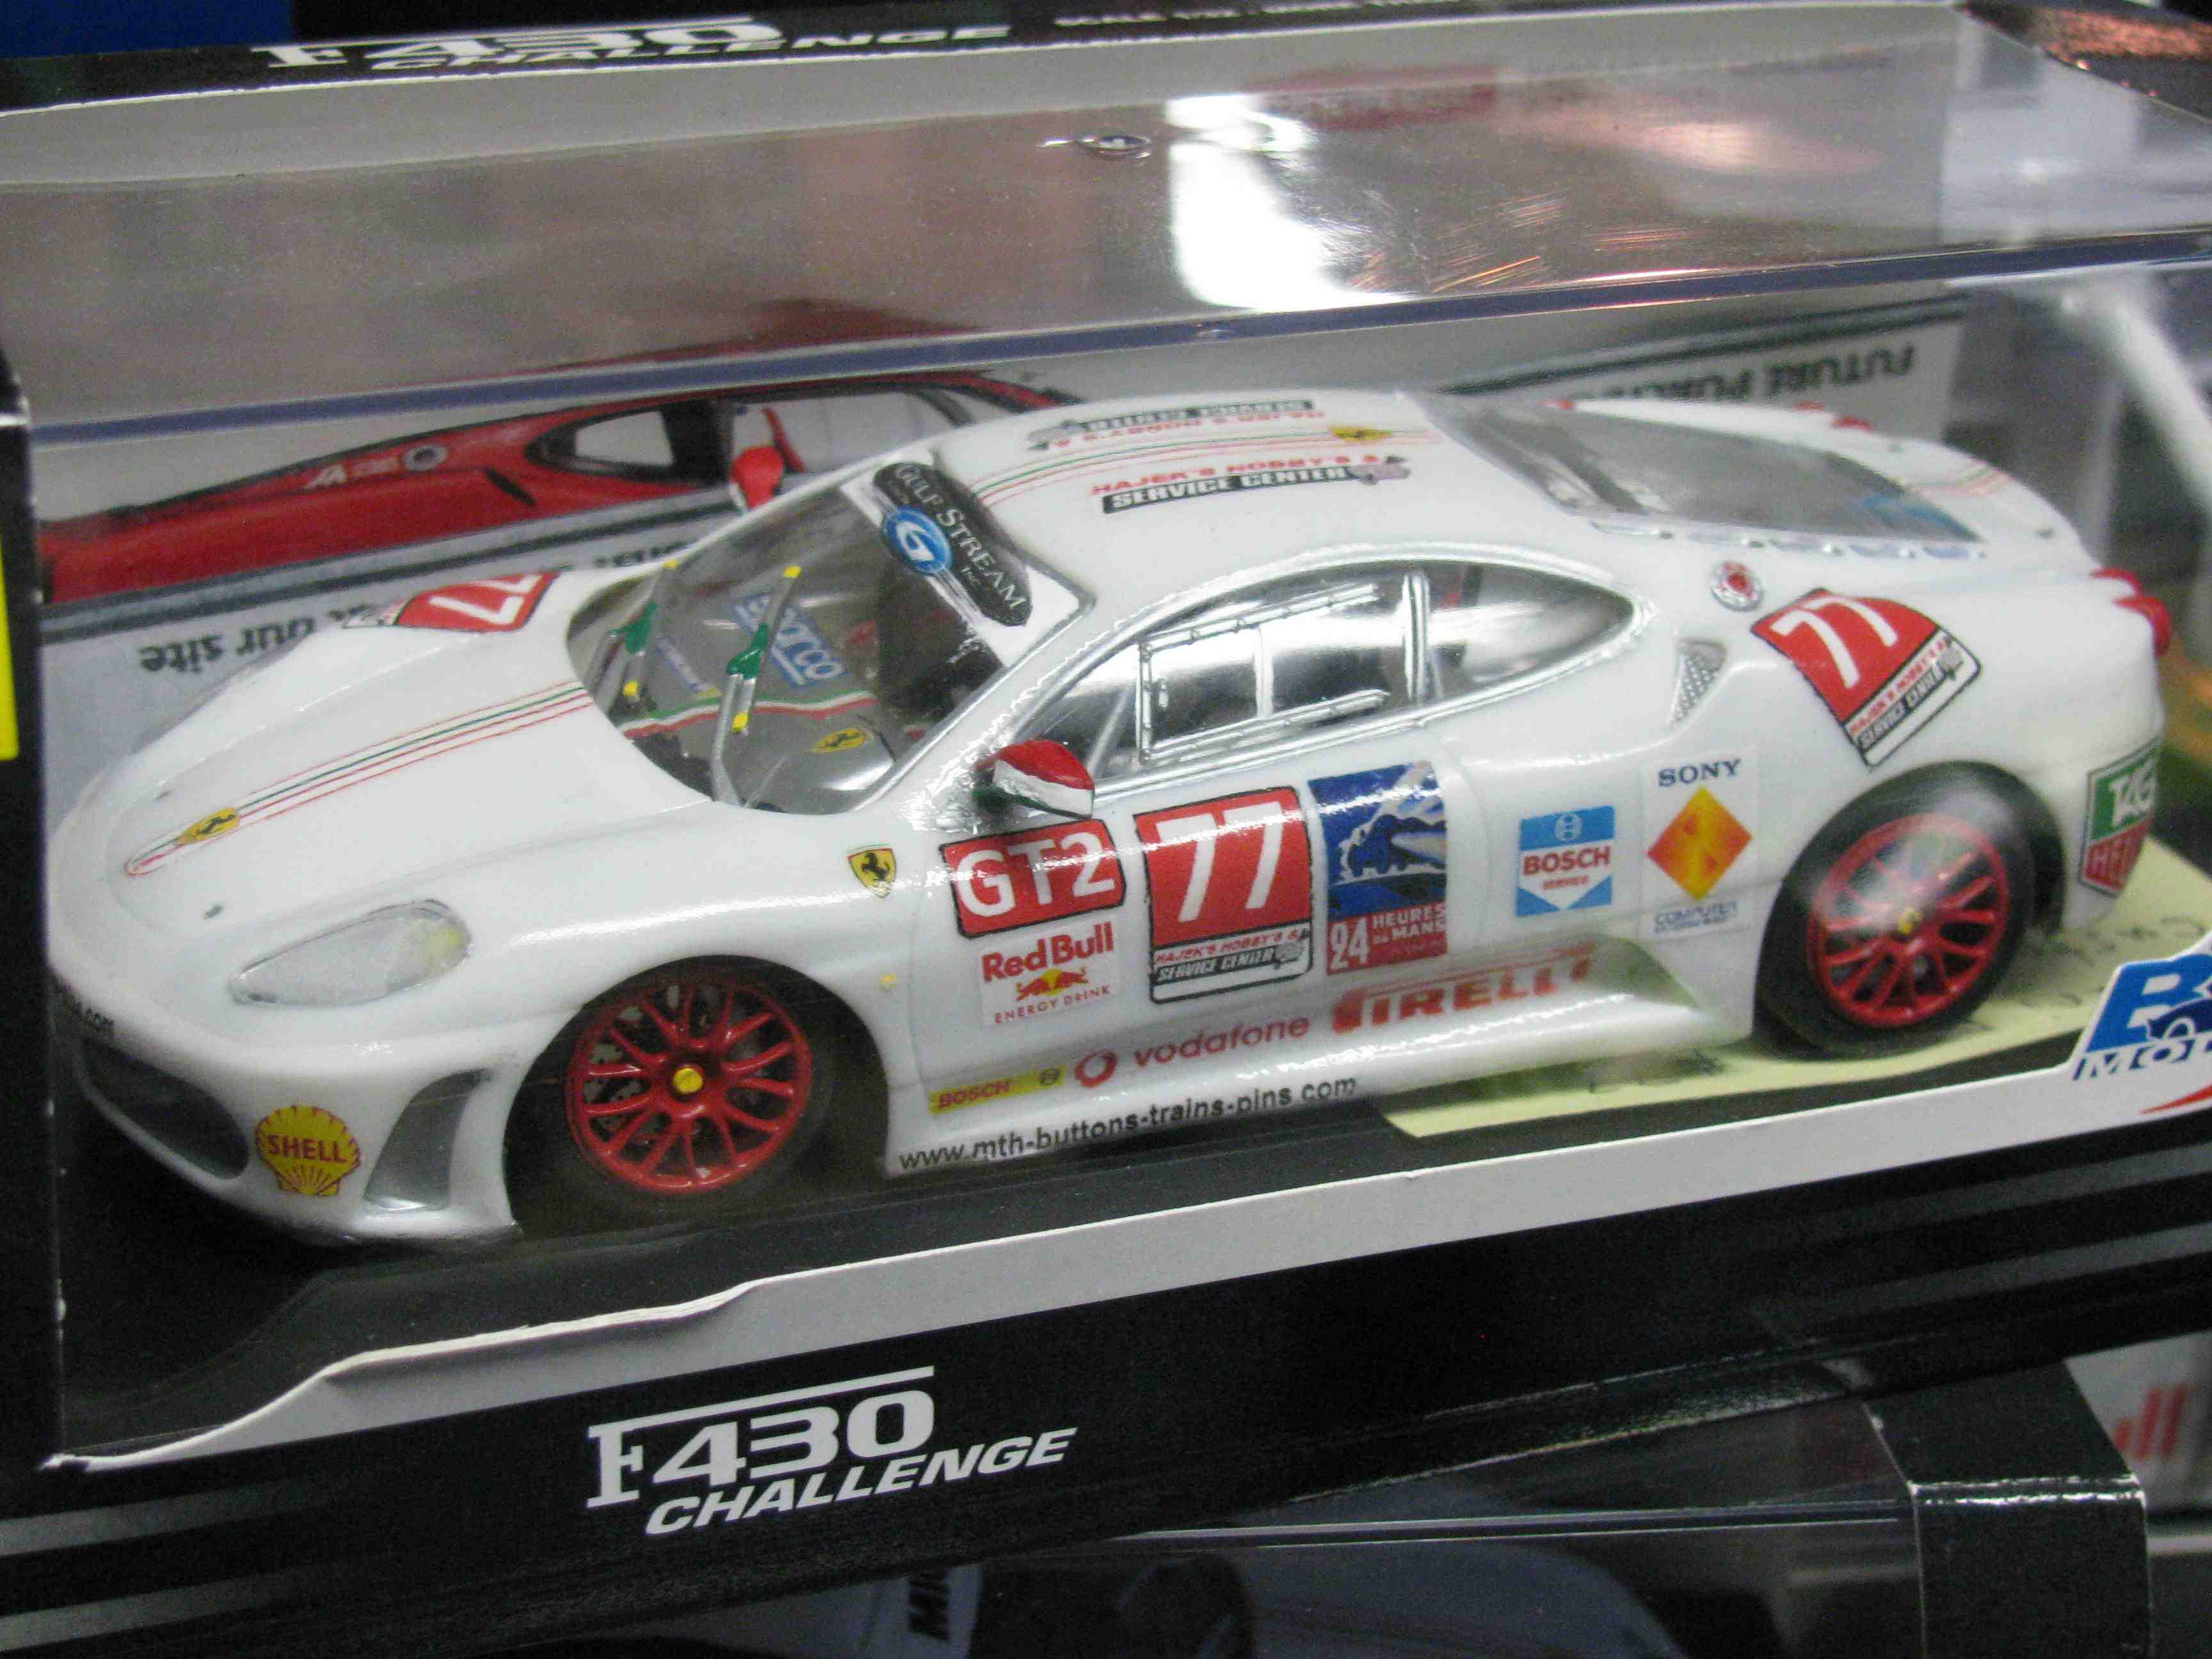 *SOLD* Ferrari F430 Challenge Slot Car in Bianca White, 24 Hour LeMan's Decal Design Livery - Car 77